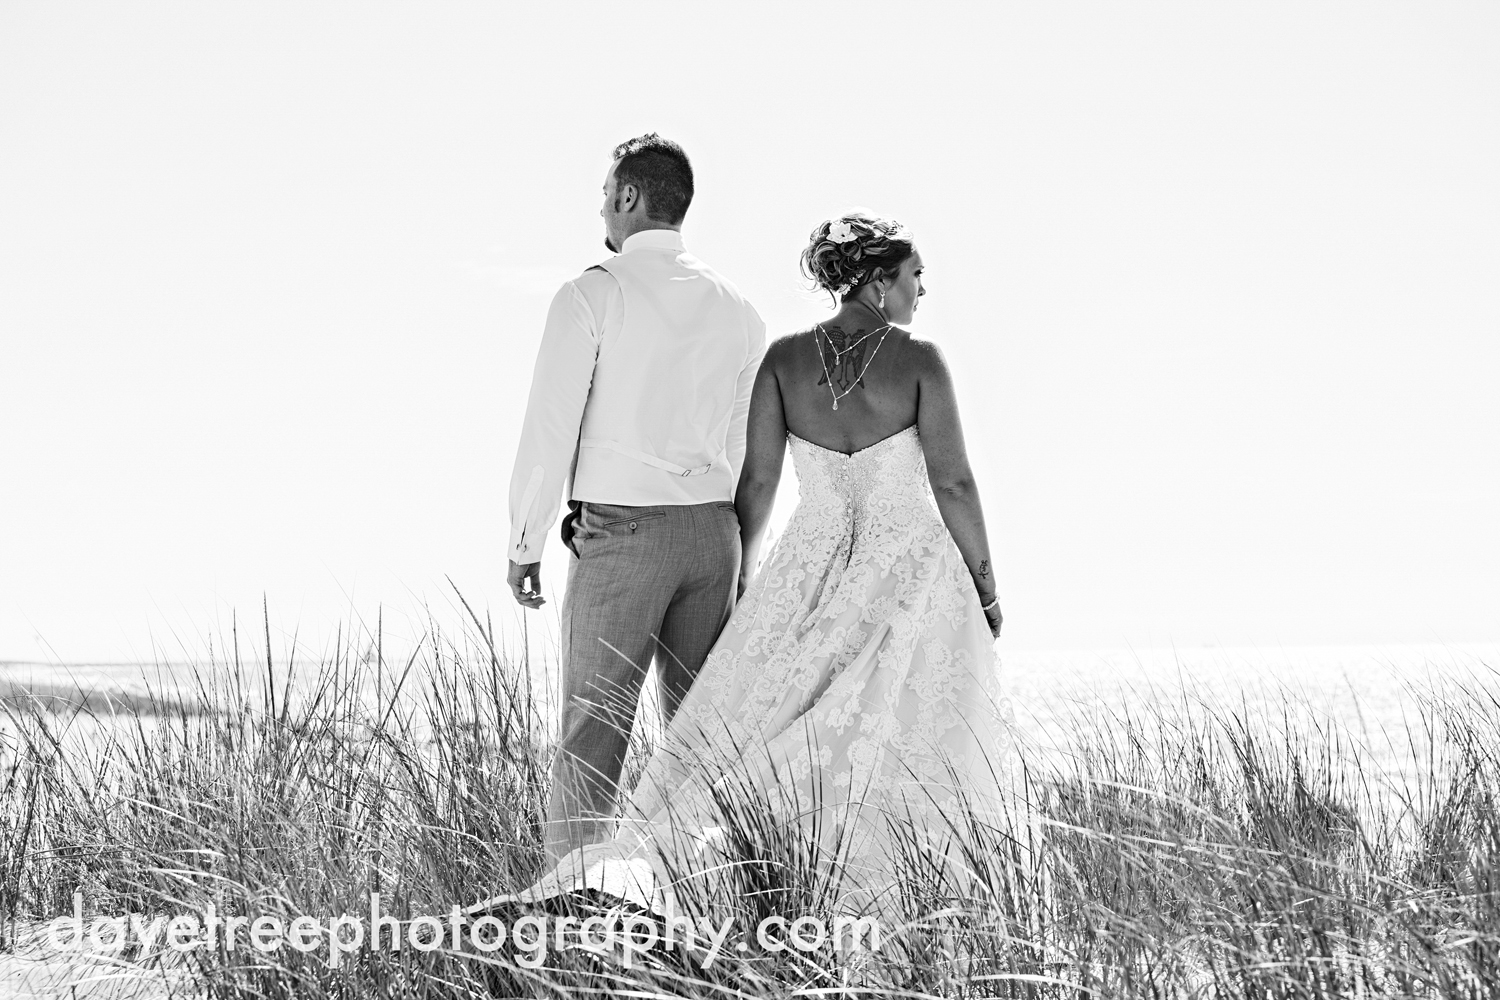 veranda_wedding_photographer_st_joseph_wedding_35.jpg